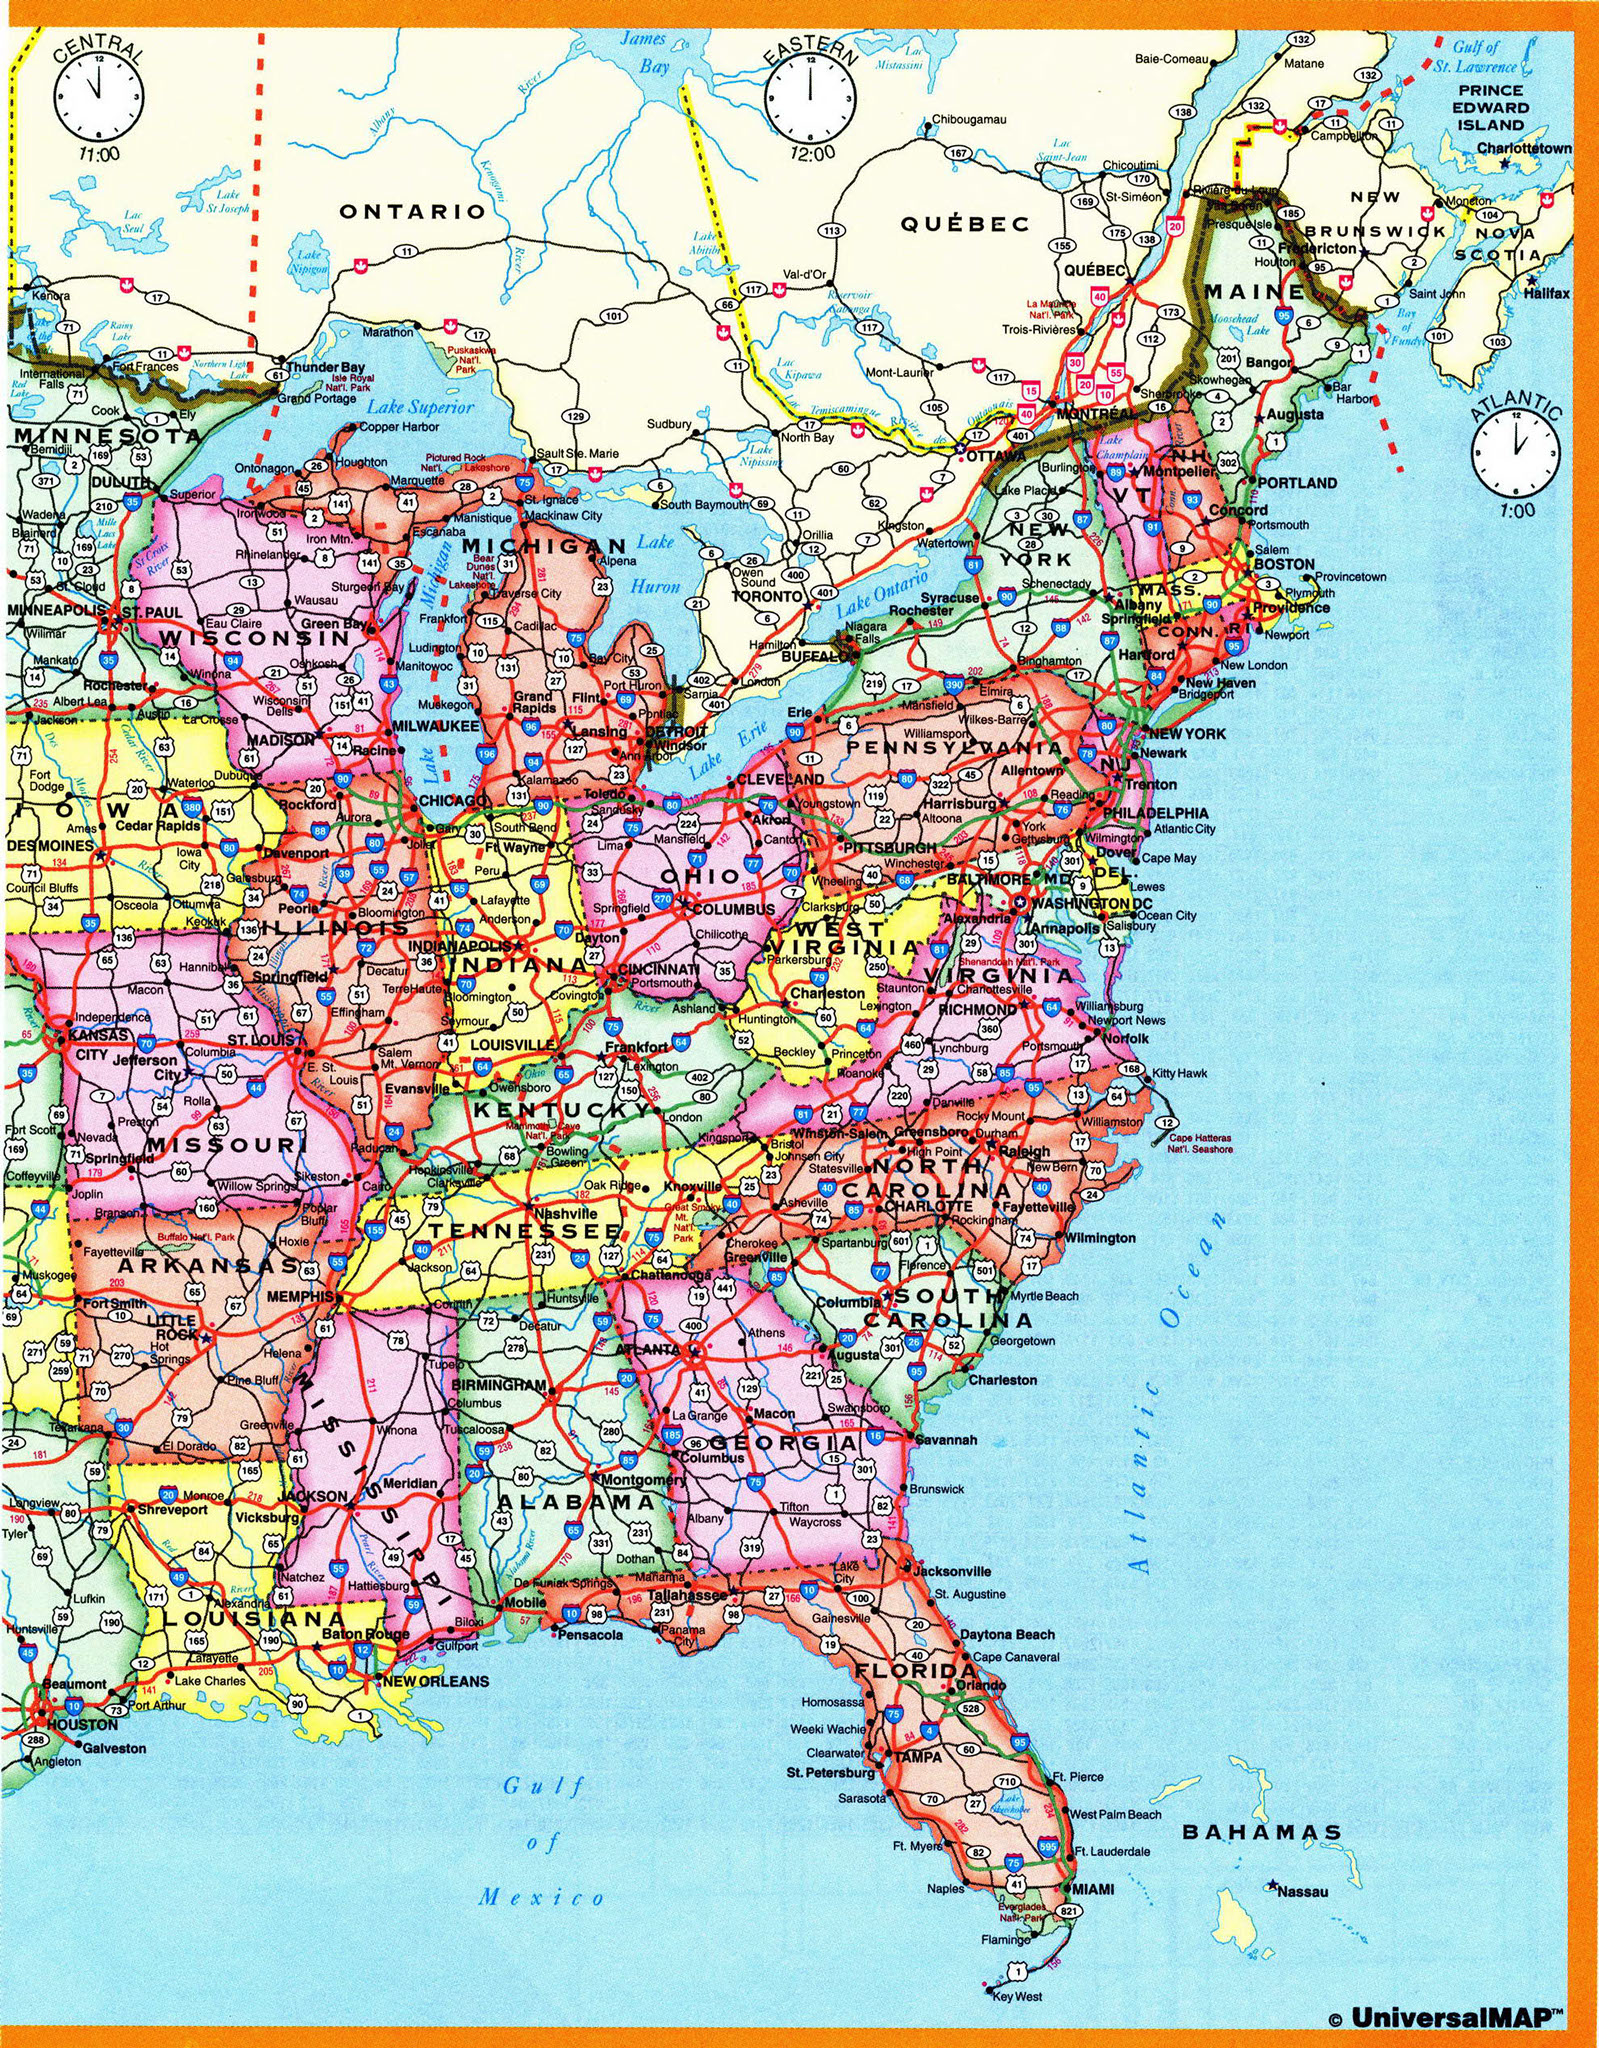 Time Zone Map Of The United States Nations Online Project US Time - Map showing us time zones